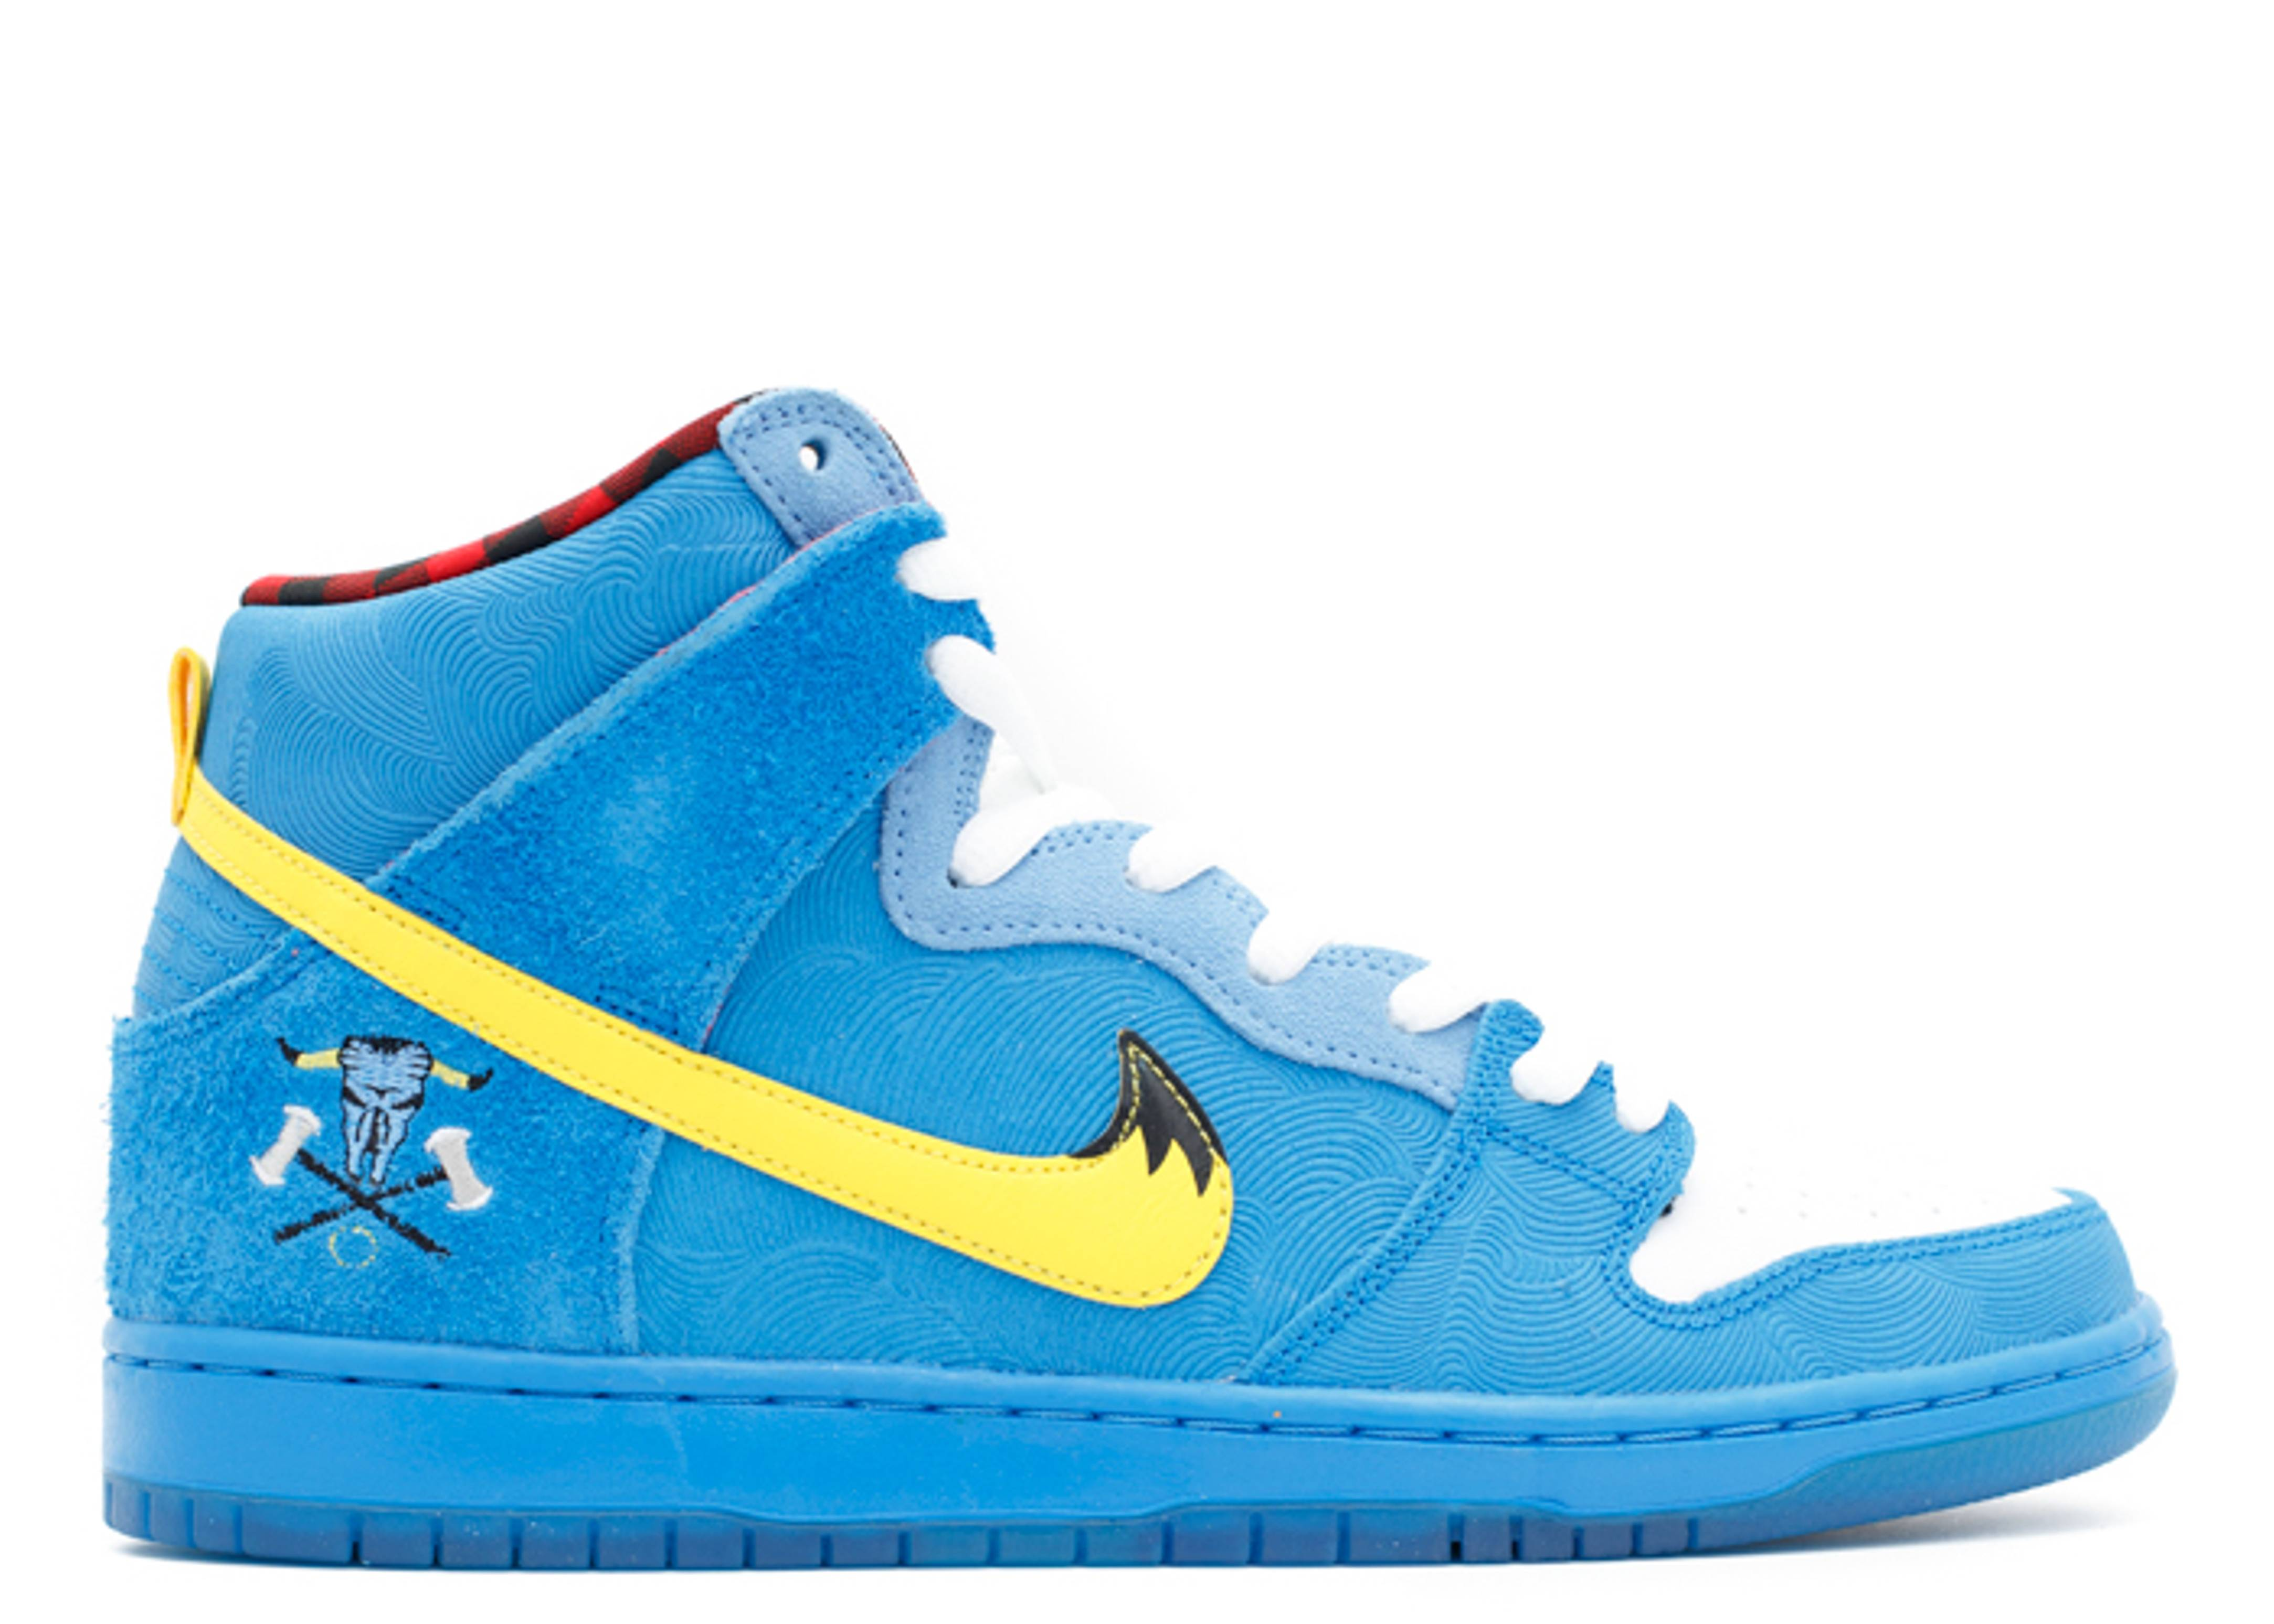 dunk high premium sb familia blue ox nike 313171. Black Bedroom Furniture Sets. Home Design Ideas